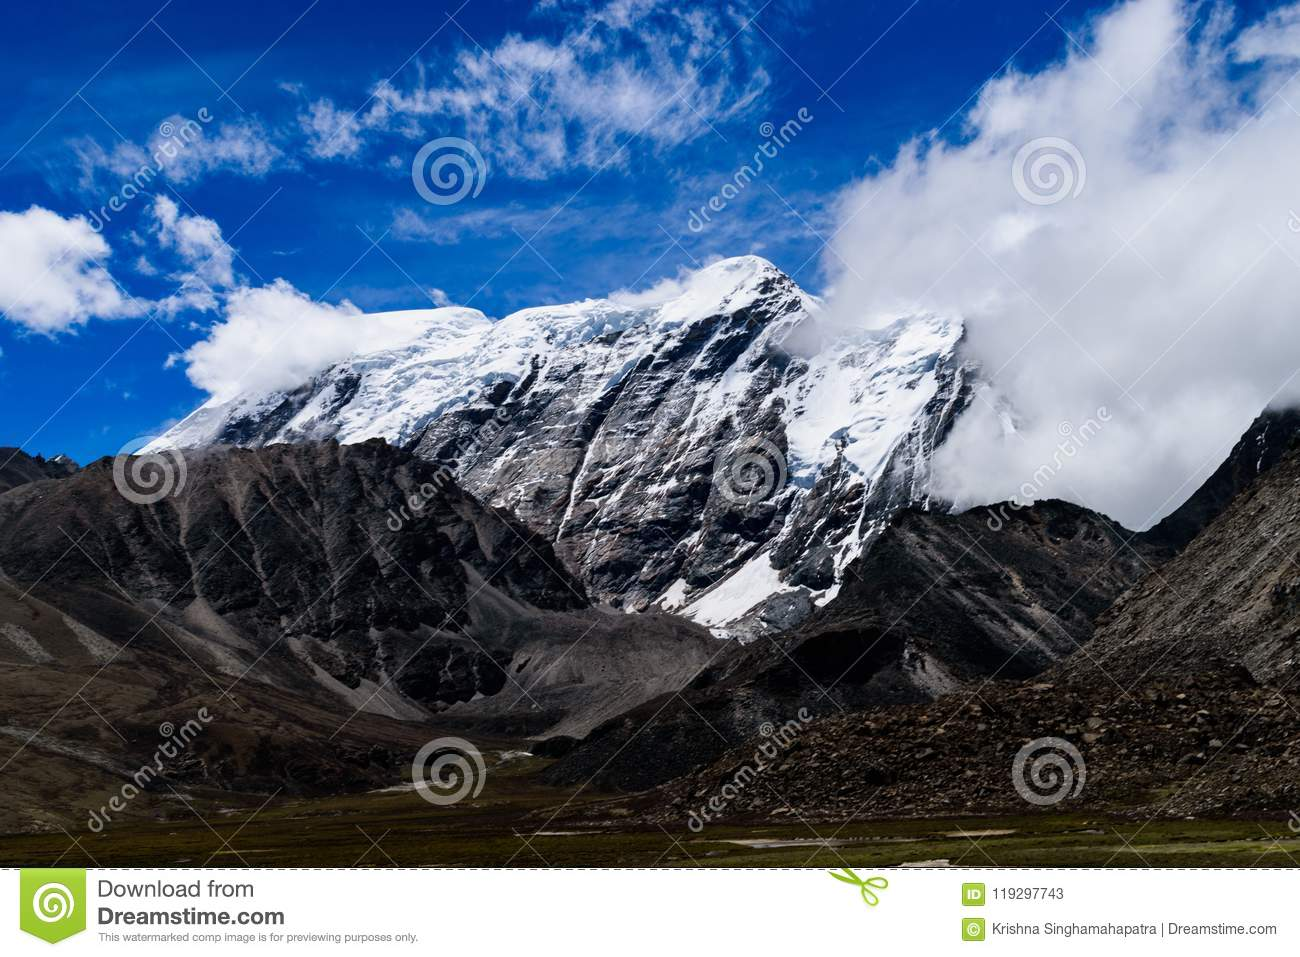 Snow Covered Himalayan Mountain Range With Clouds Originating From It